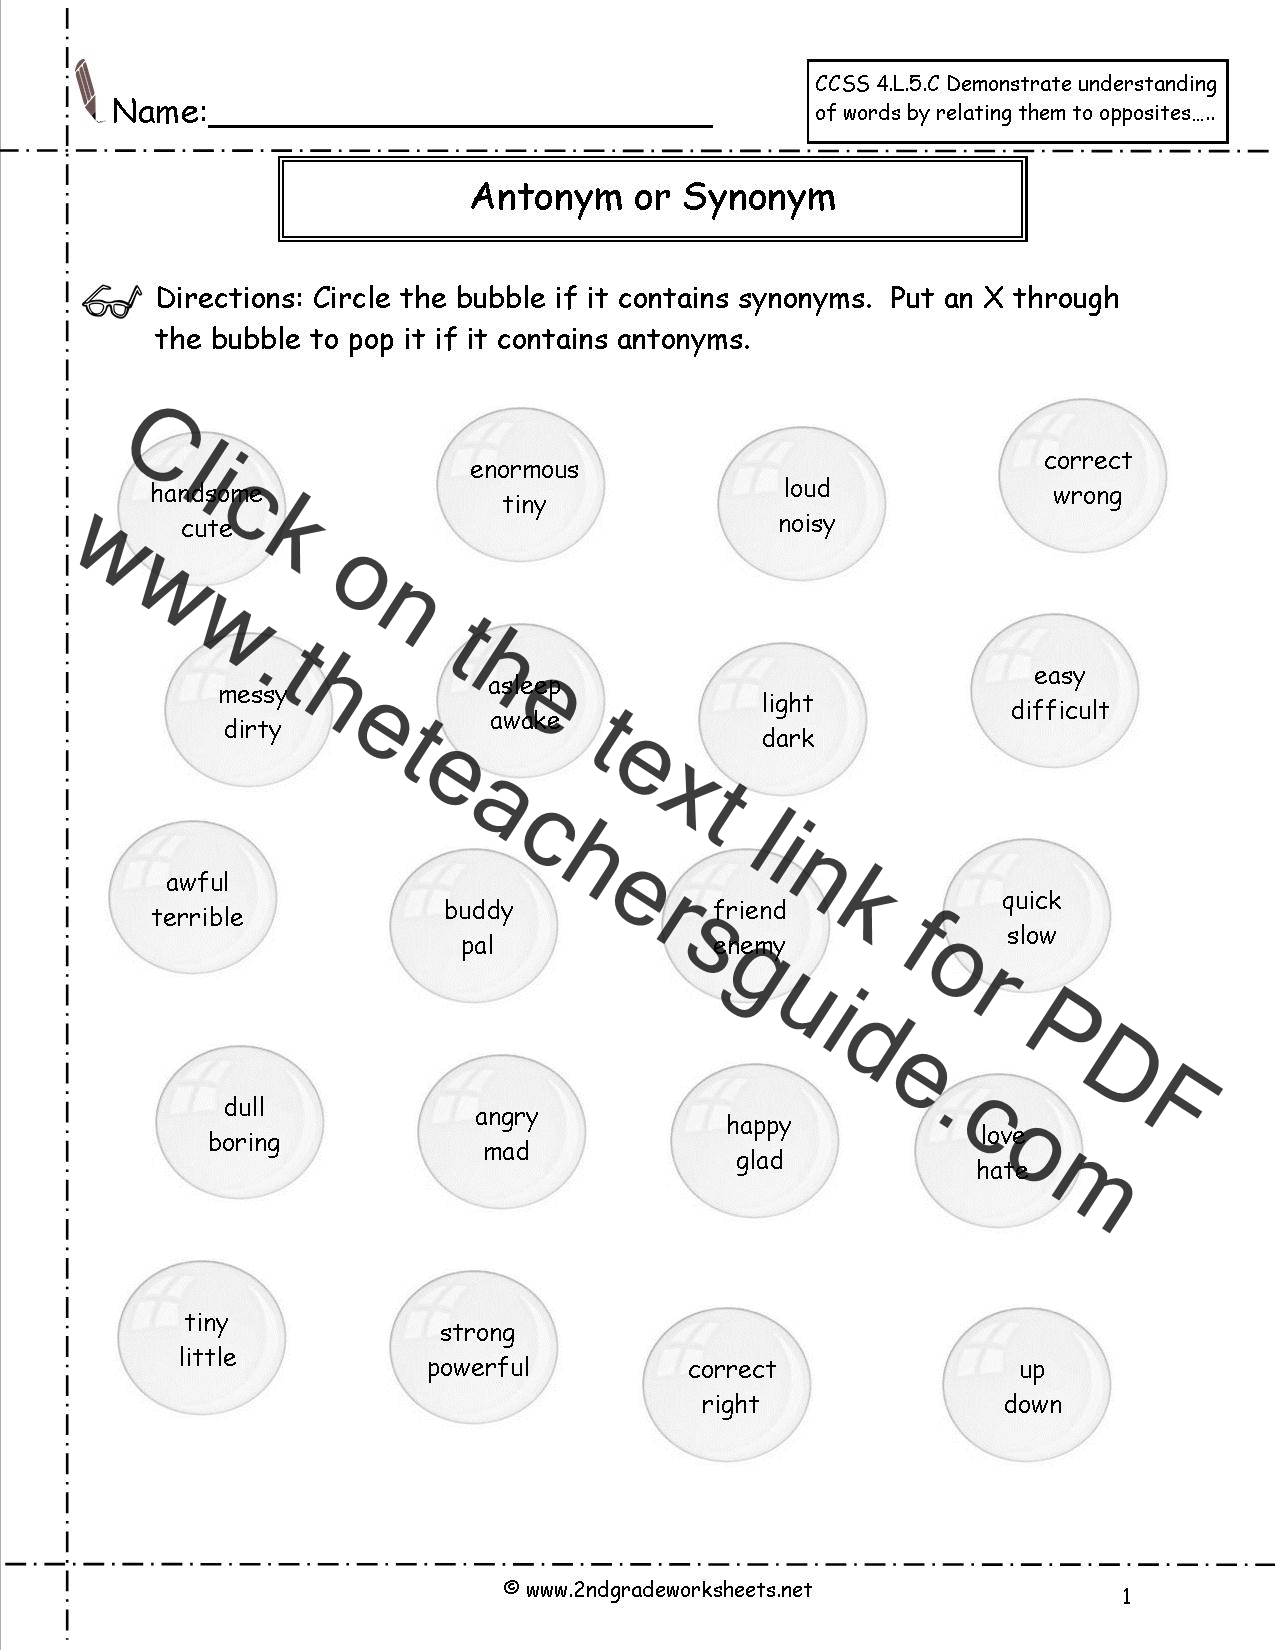 Synonyms and Antonyms Worksheets – Synonym Antonym Worksheet